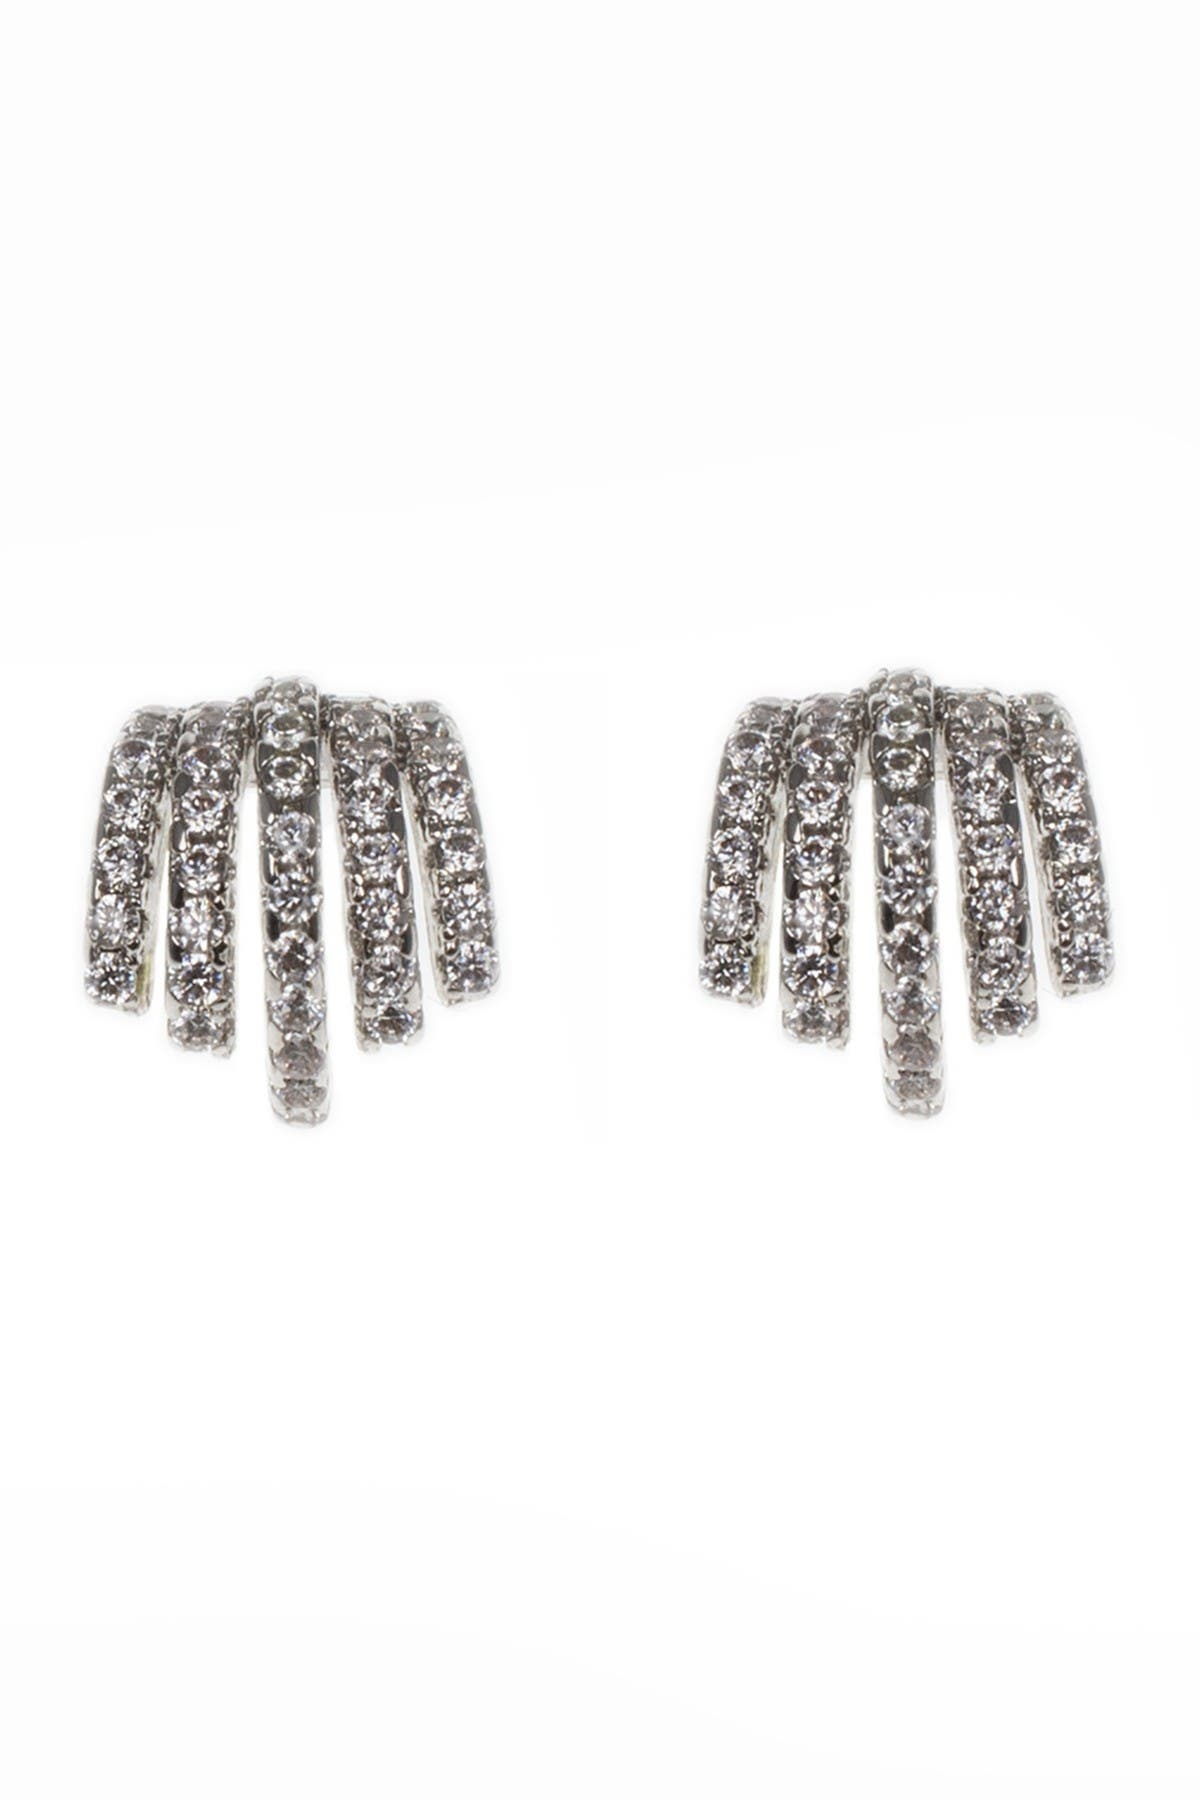 Image of CZ By Kenneth Jay Lane CZ Accent Huggie Claw Earrings